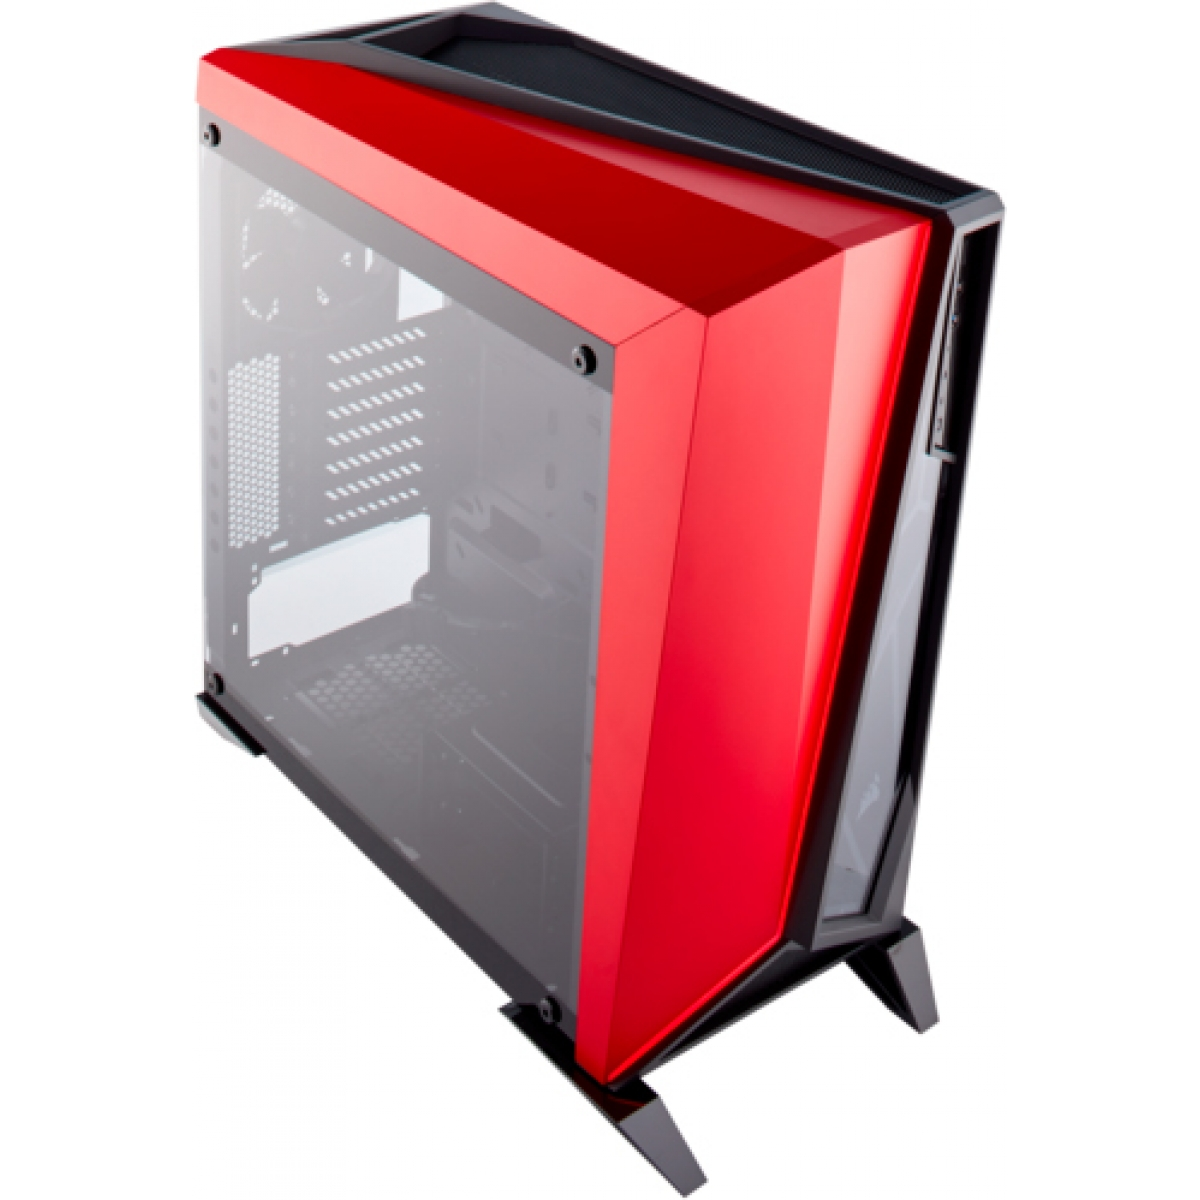 Gabinete Gamer Corsair Carbide Spec-Omega, Mid Tower, Com 2 Fans, Vidro Temperado, Black-Red, S-Fonte, CC-9011120-WW